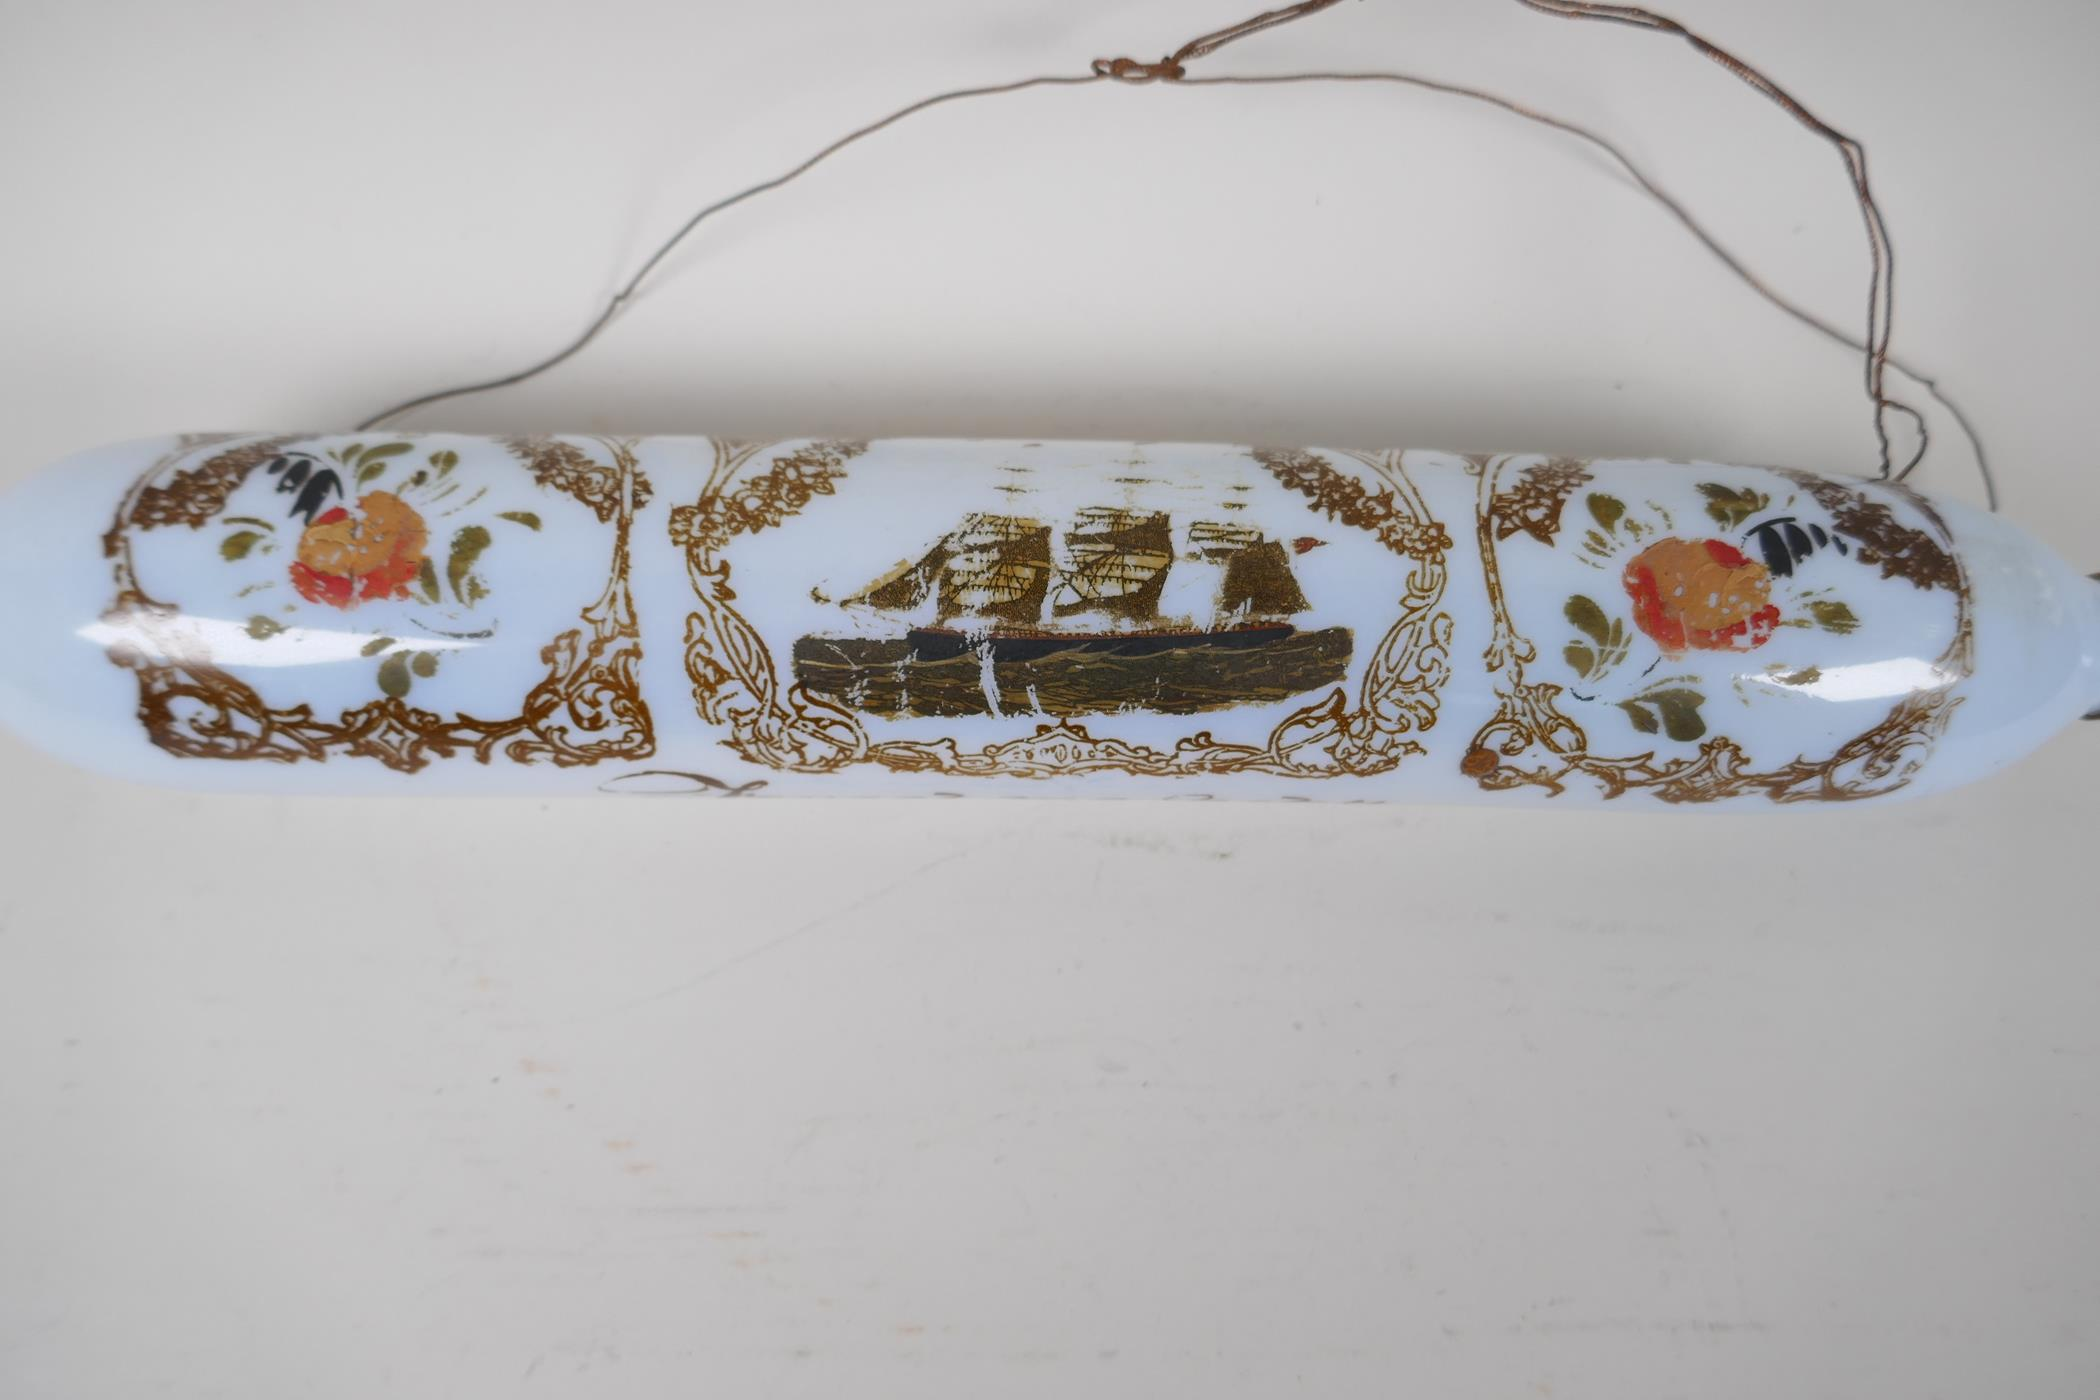 """A Victorian milk glass rolling pin, painted with flowers and a three masted ship, 14"""" long - Image 2 of 5"""